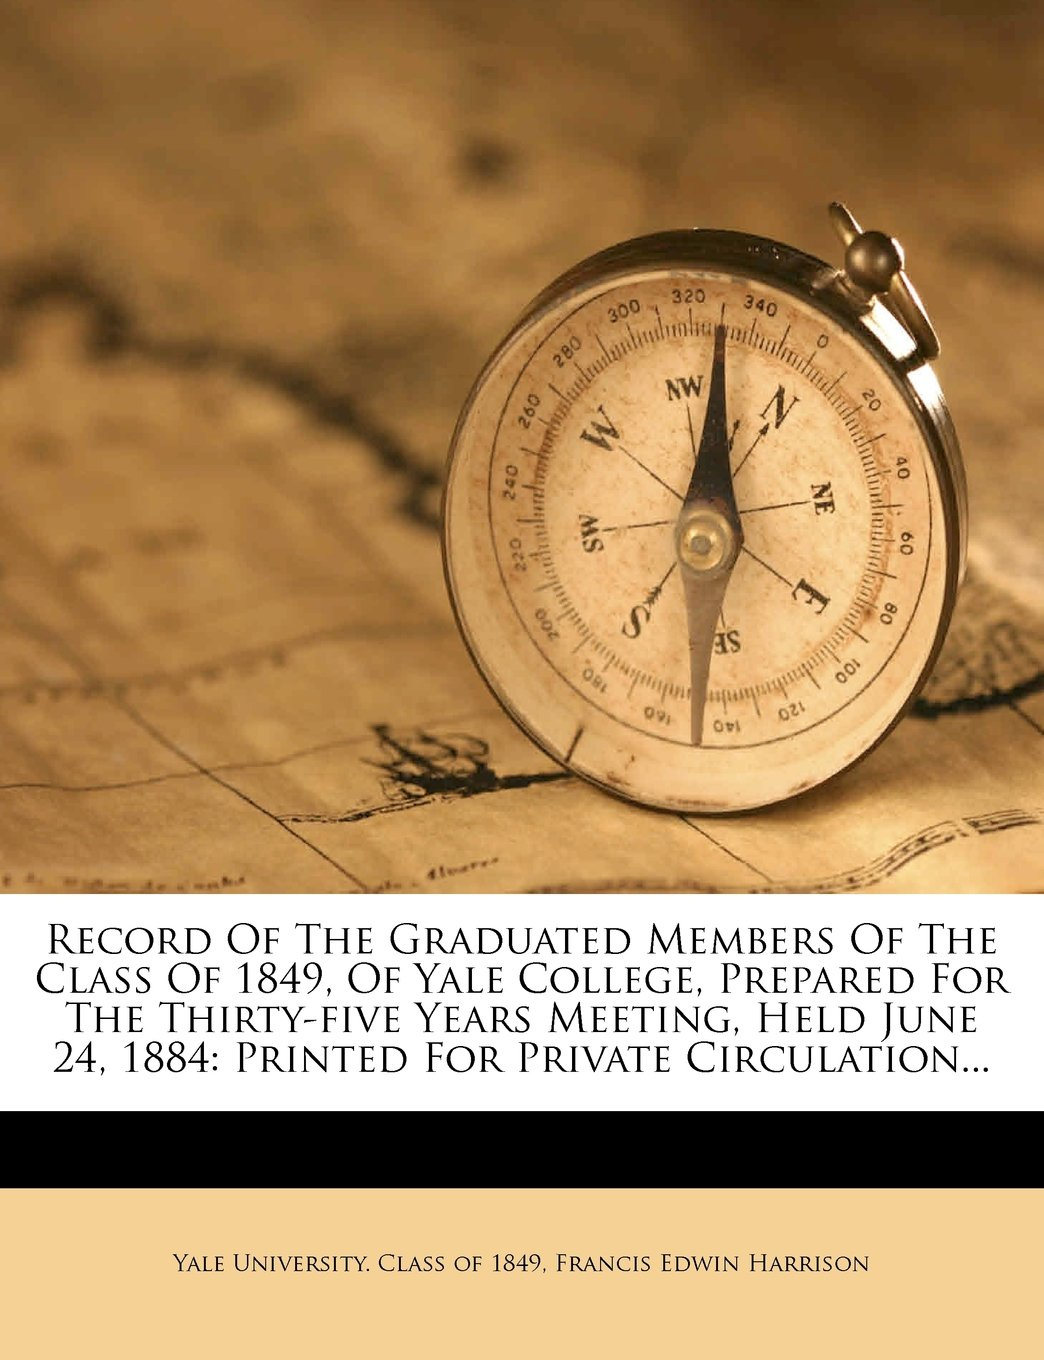 Download Record Of The Graduated Members Of The Class Of 1849, Of Yale College, Prepared For The Thirty-five Years Meeting, Held June 24, 1884: Printed For Private Circulation... ebook